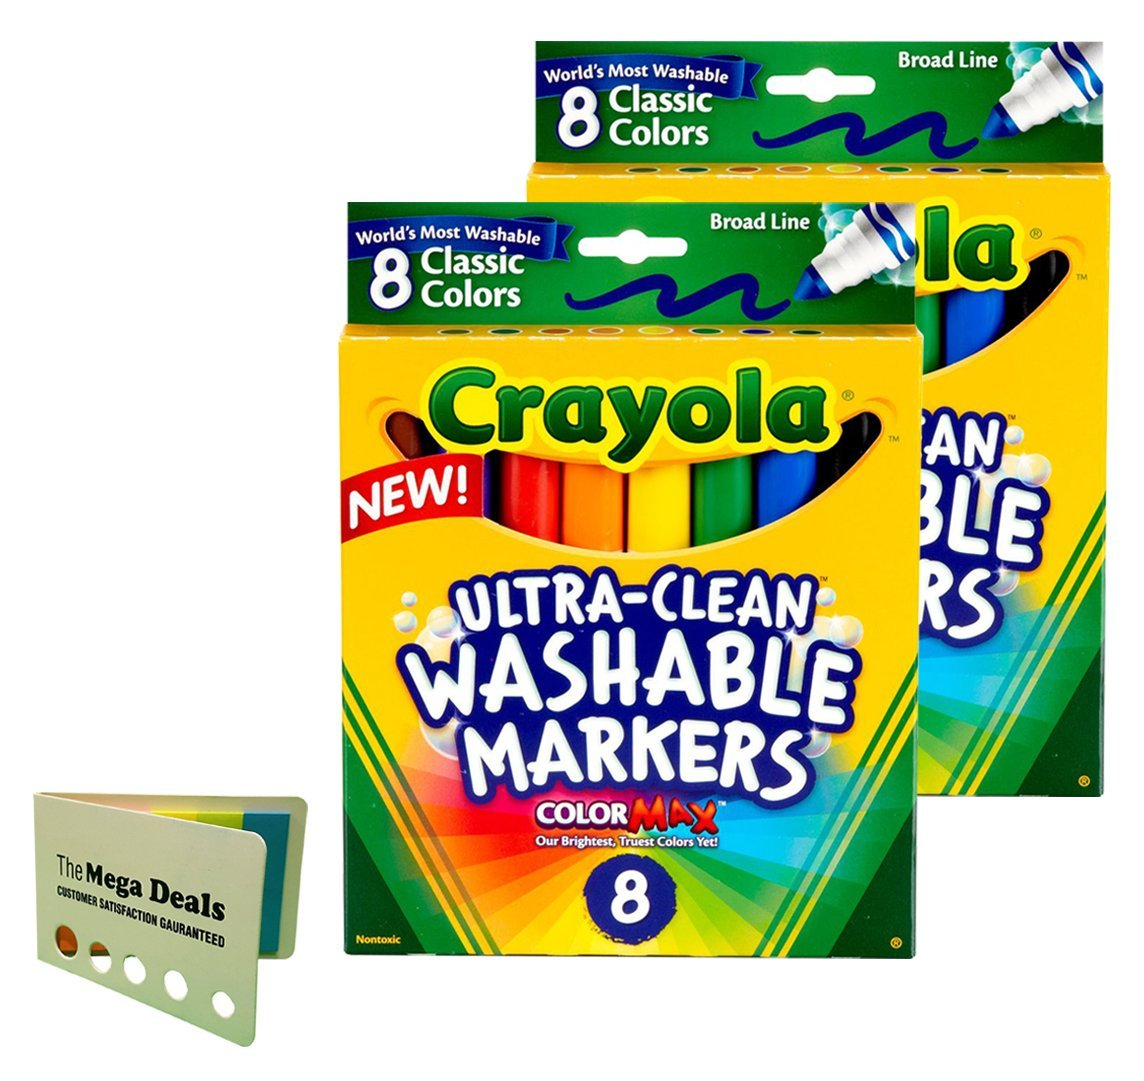 Crayola 12 Ct Ultra-Clean Washable Markers 58-7812